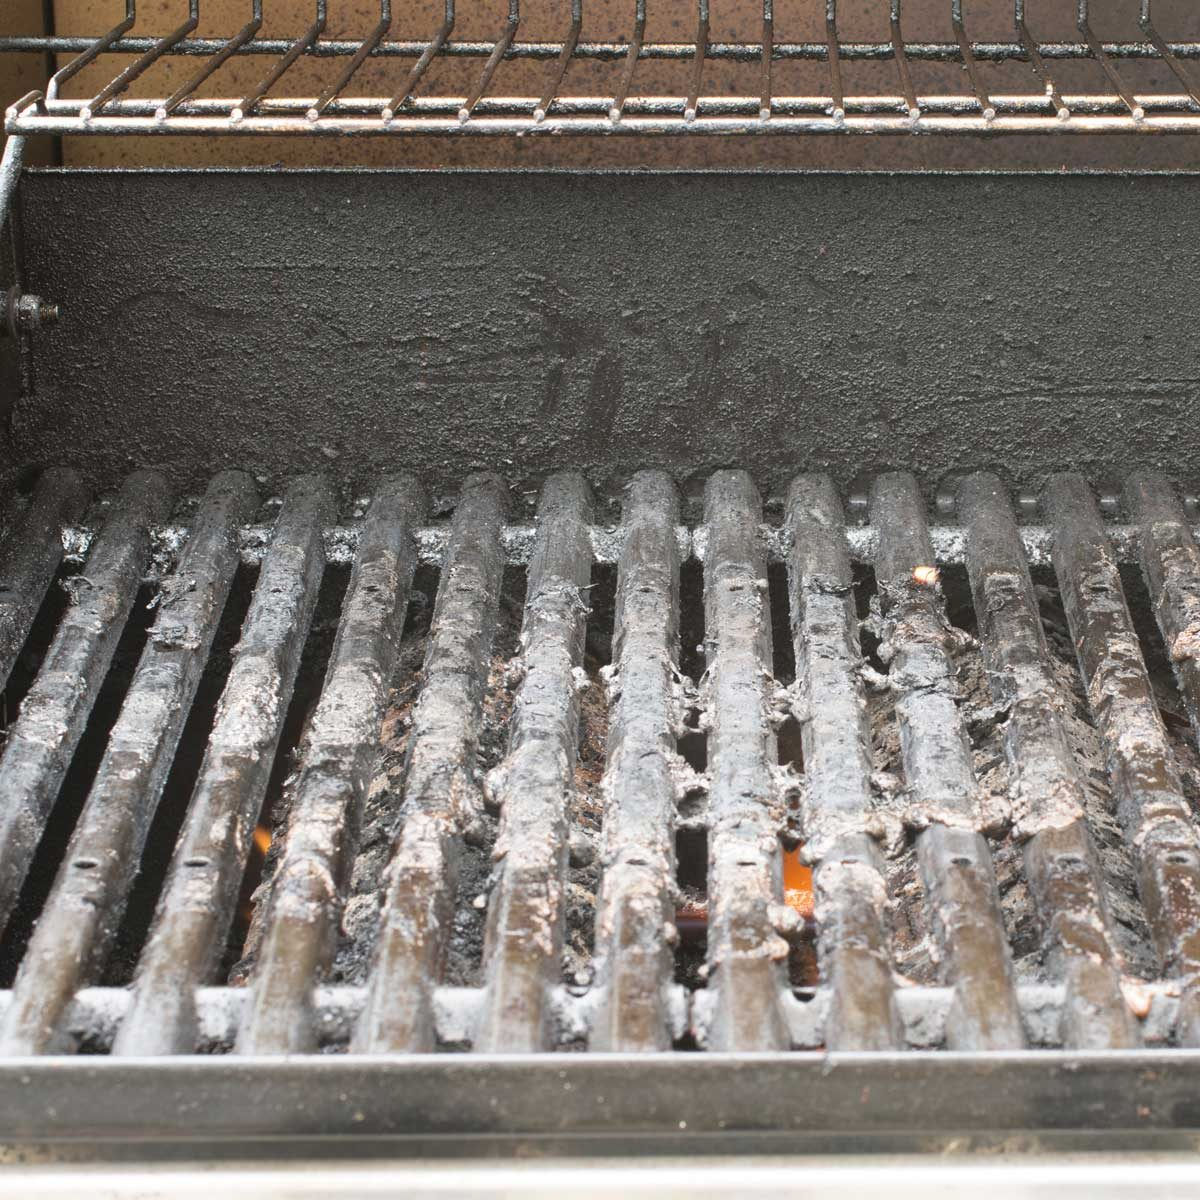 5 Ways To Clean Your Gas Grill